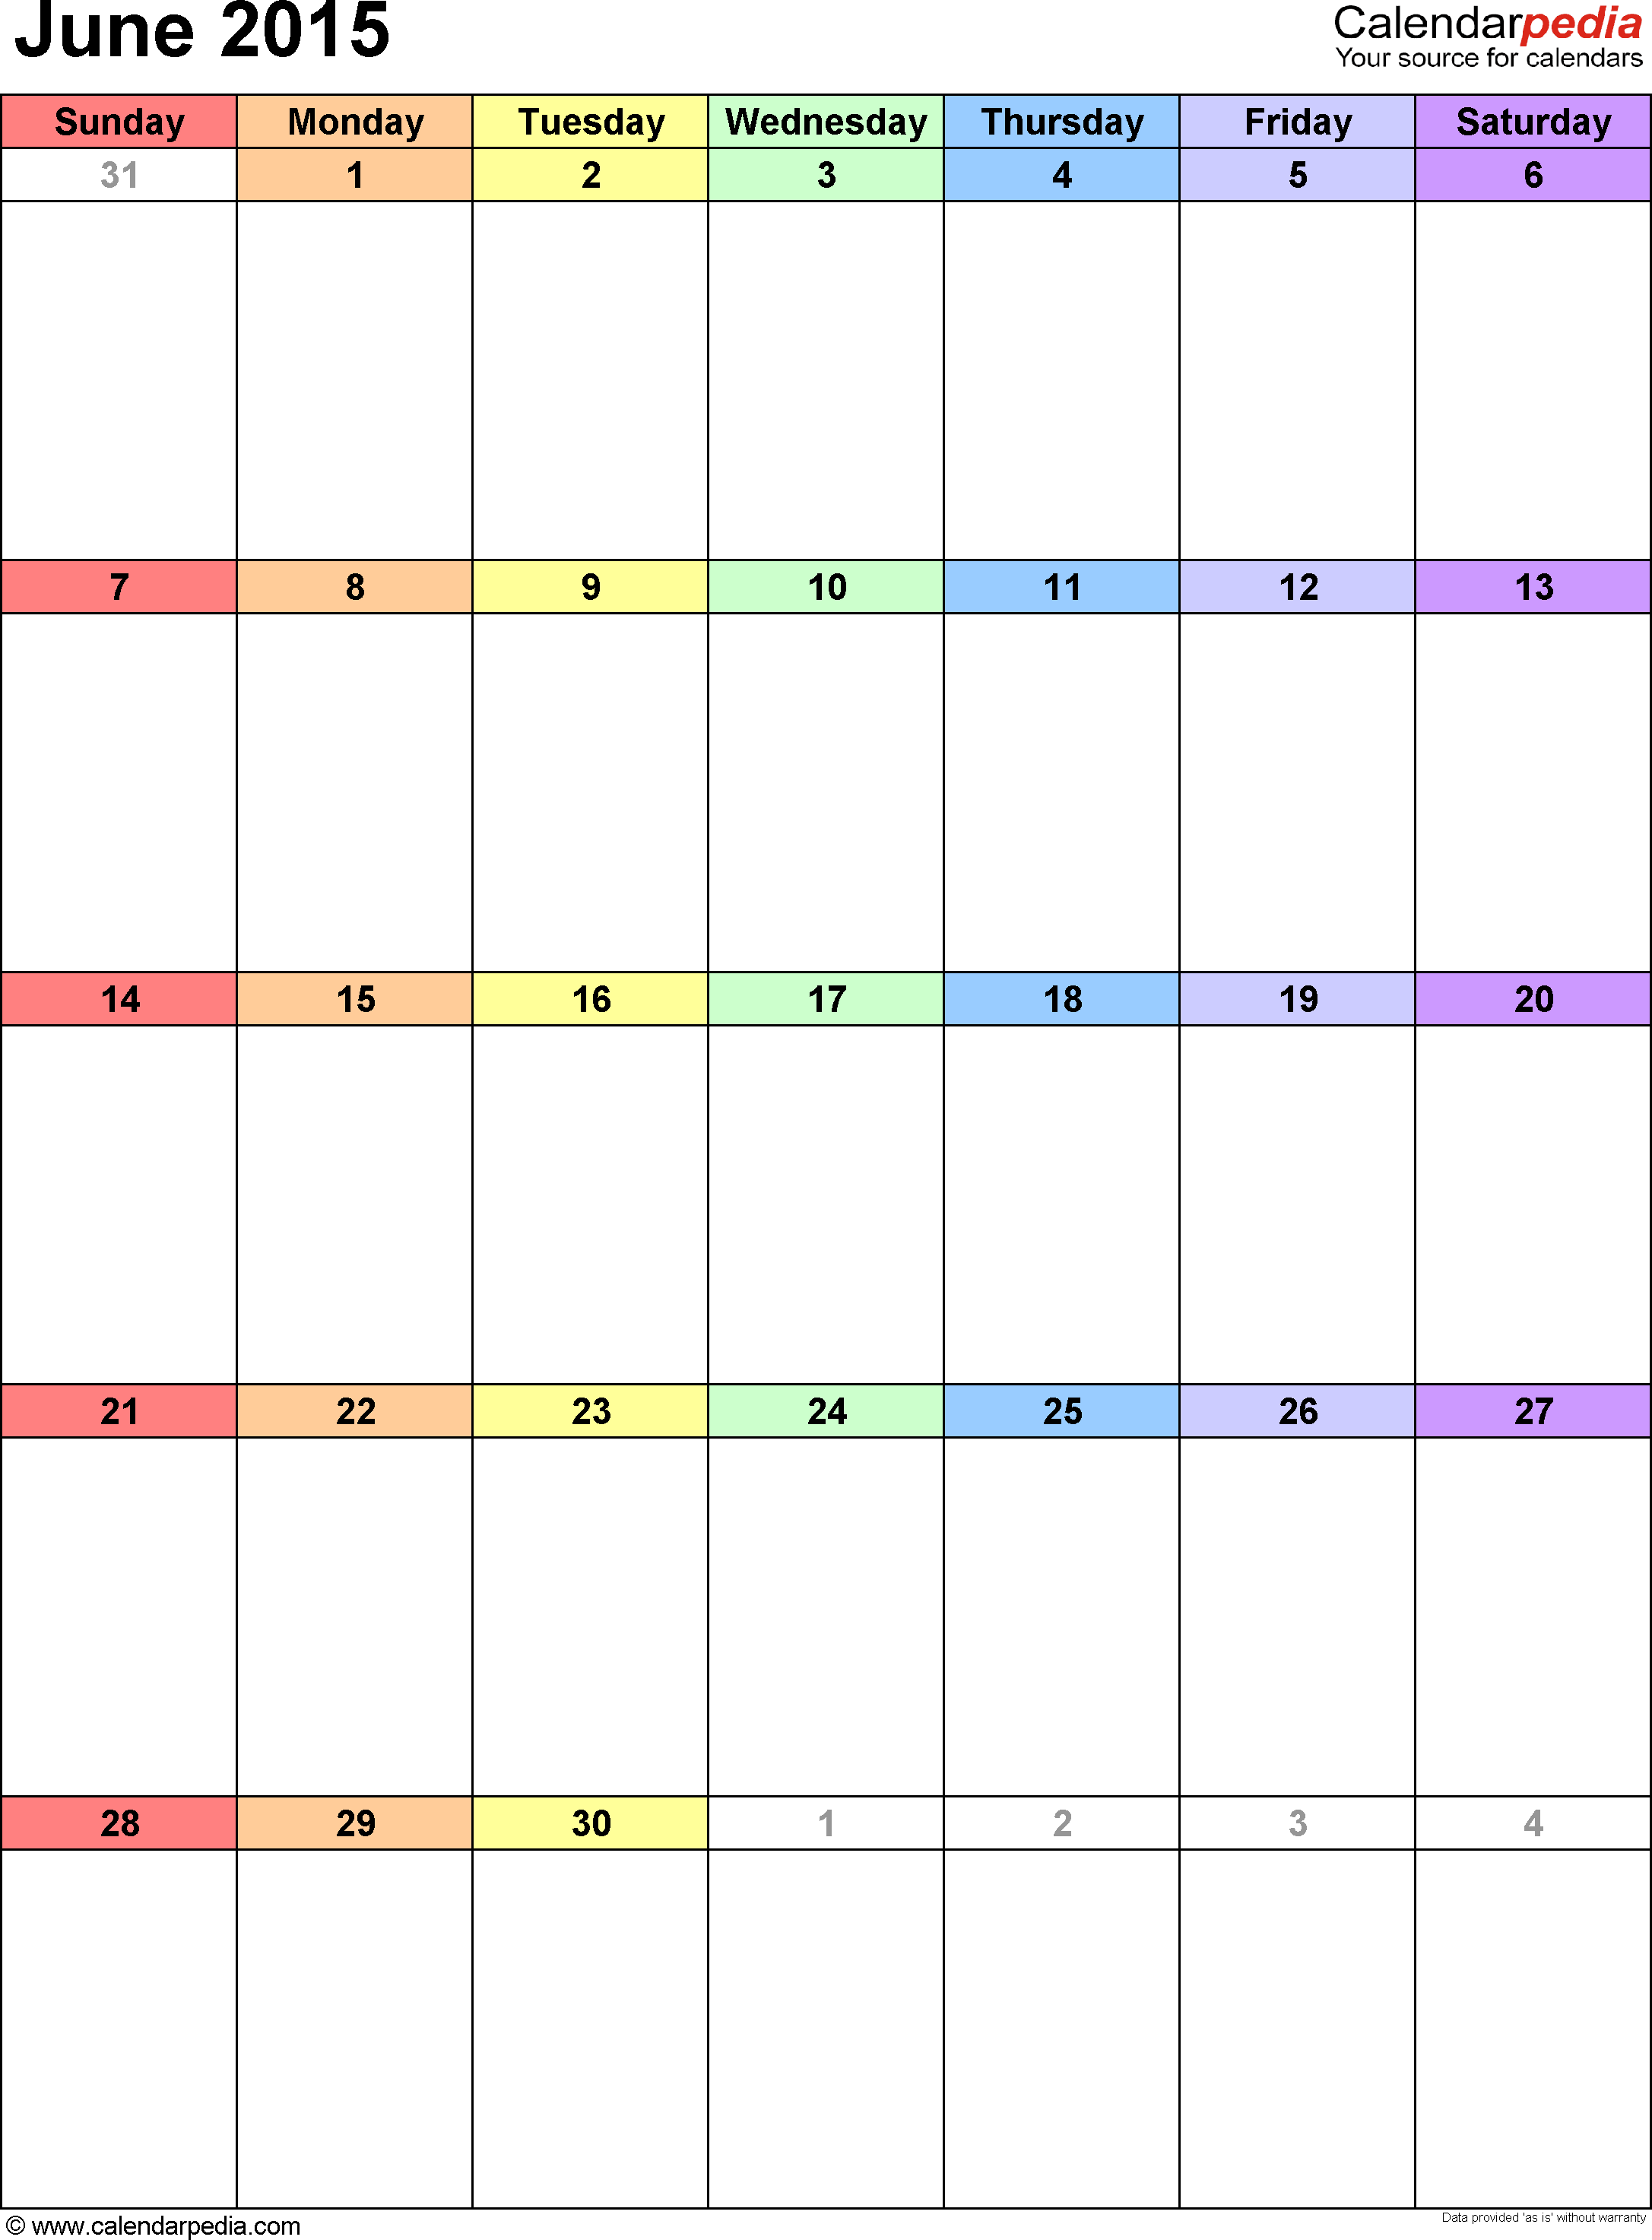 June 2015 Calendars for Word Excel PDF – Calendar Templates in Word